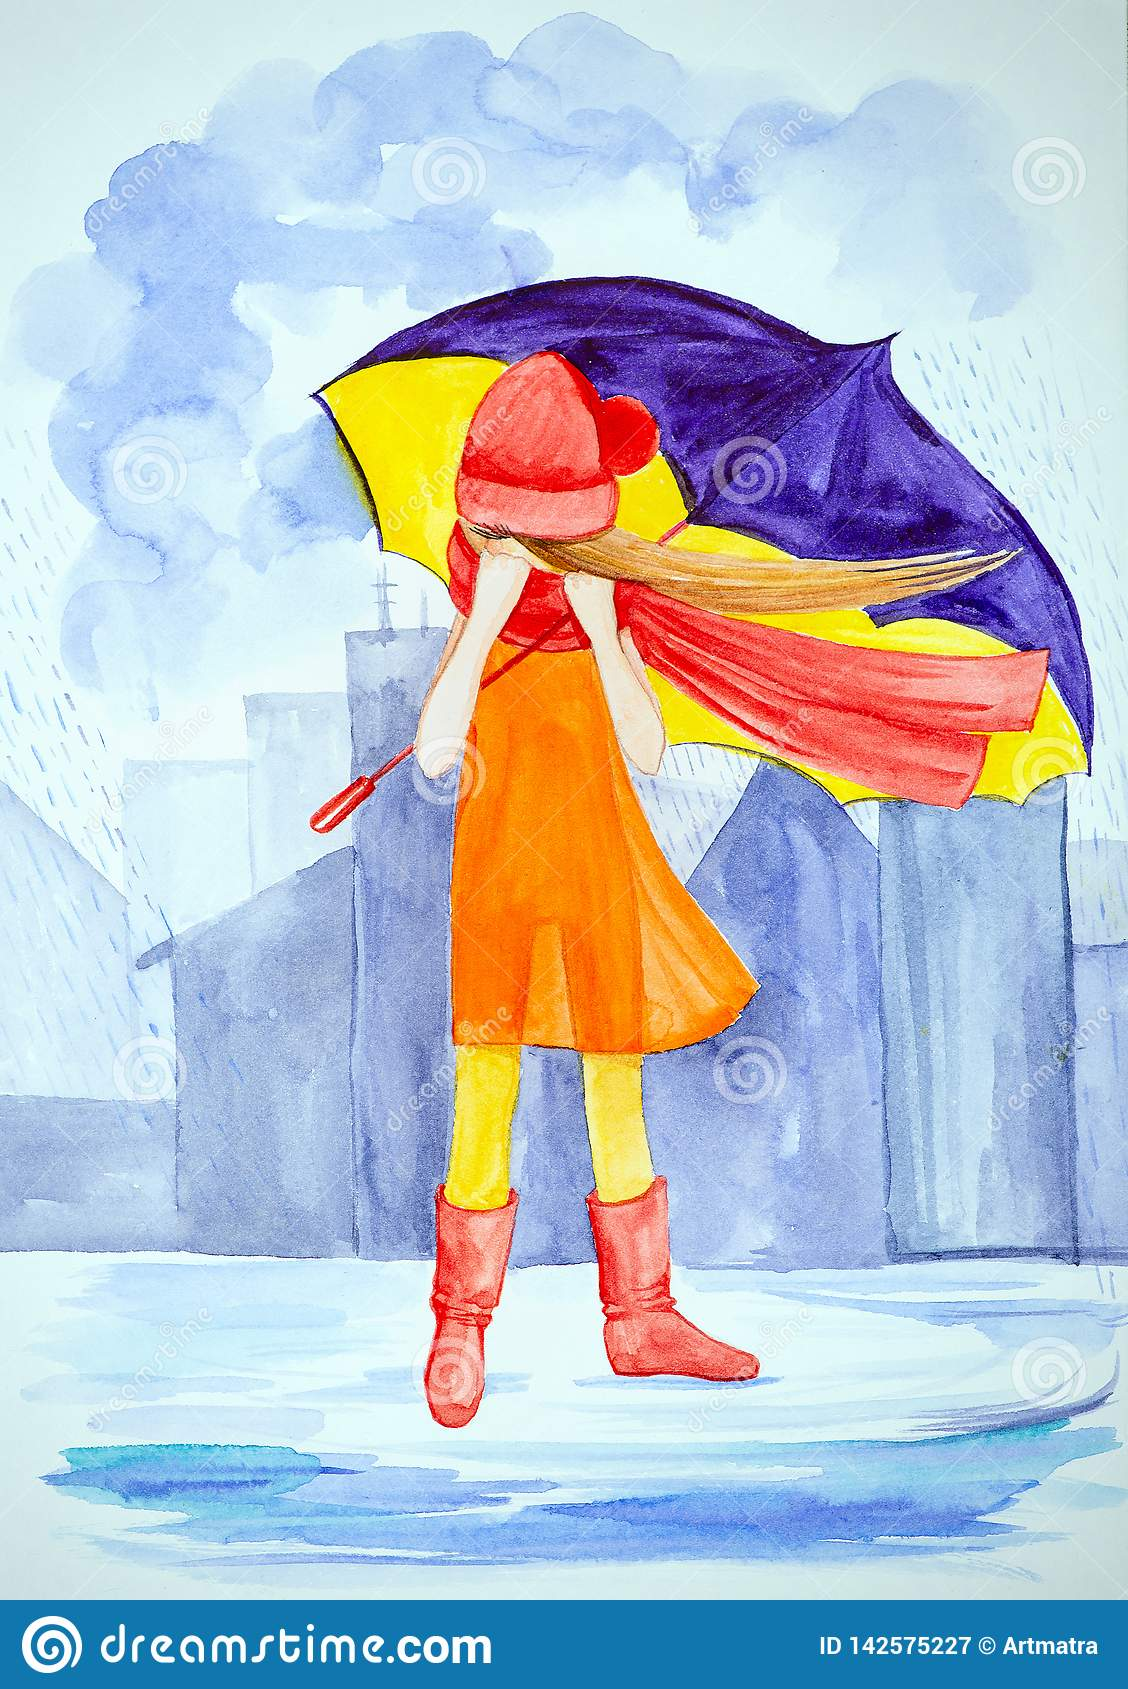 A young lonely girl with a purple big umbrella stands in the rain in the city among the buildings. Dressed in a light orange dress